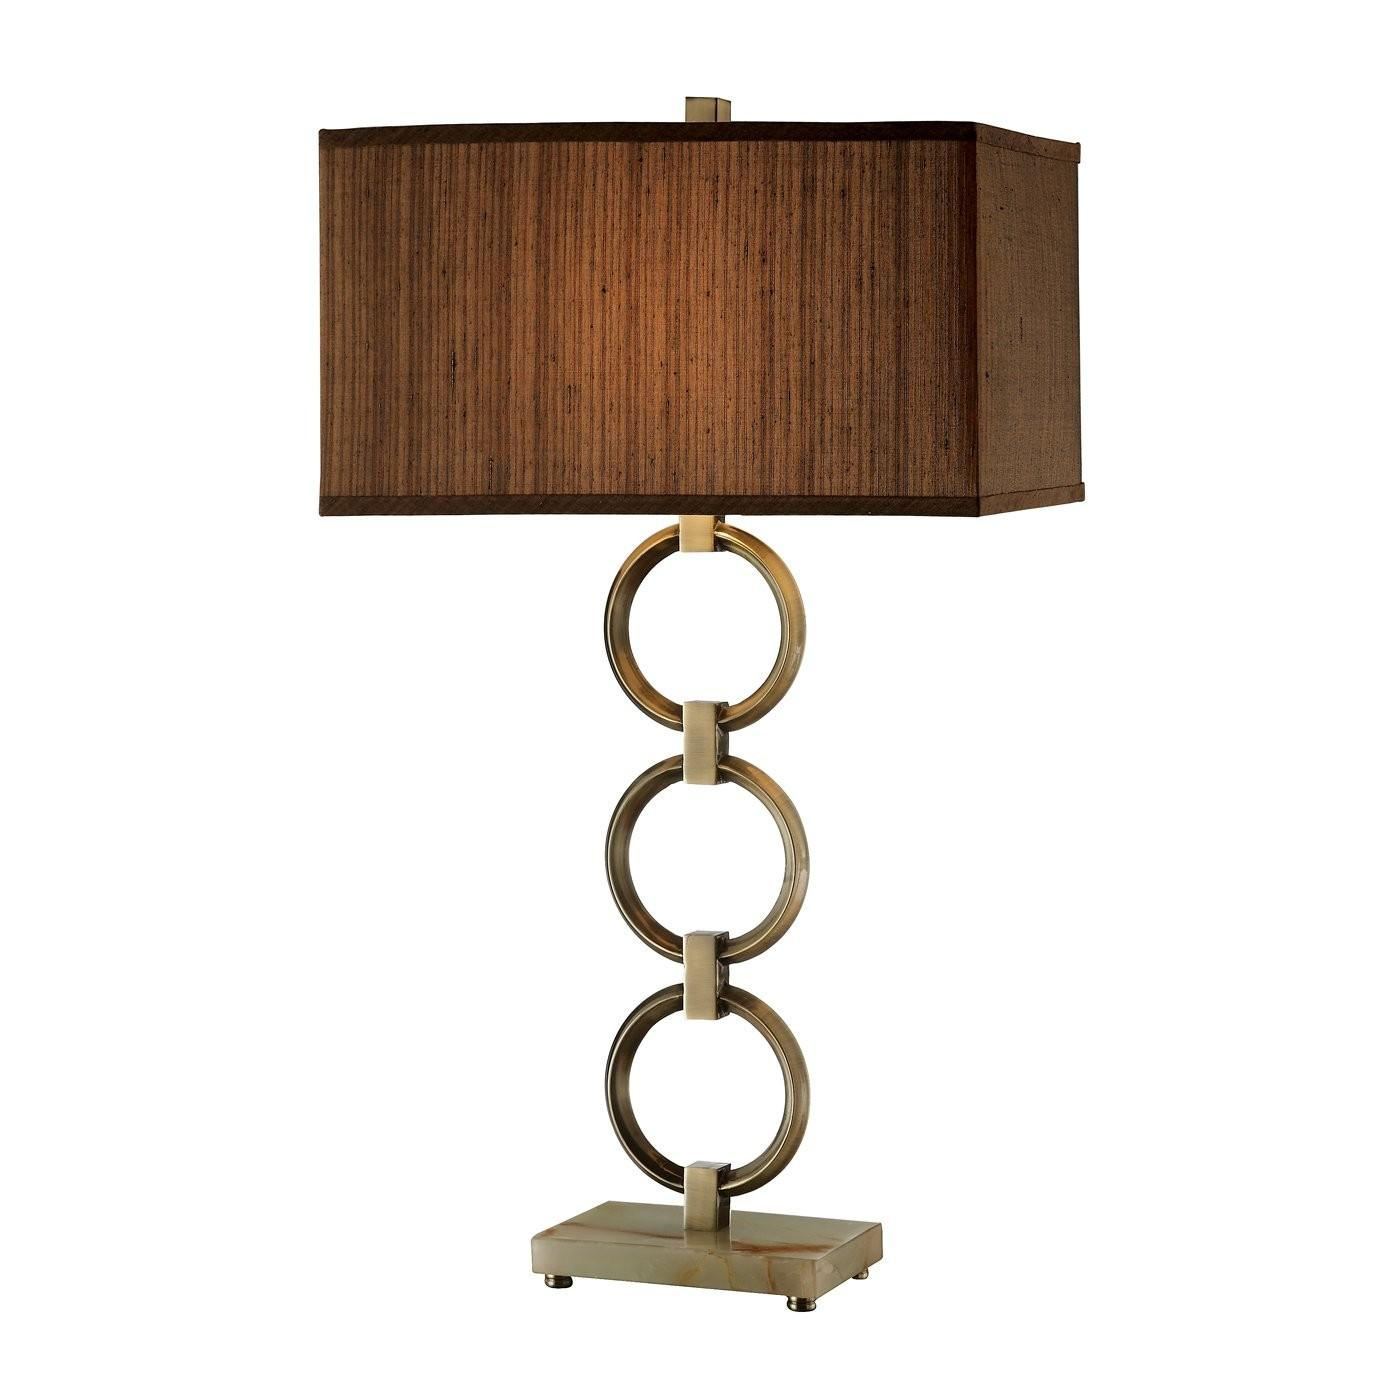 Stein World Chase Stack Ring Table Lamp Atg Stores